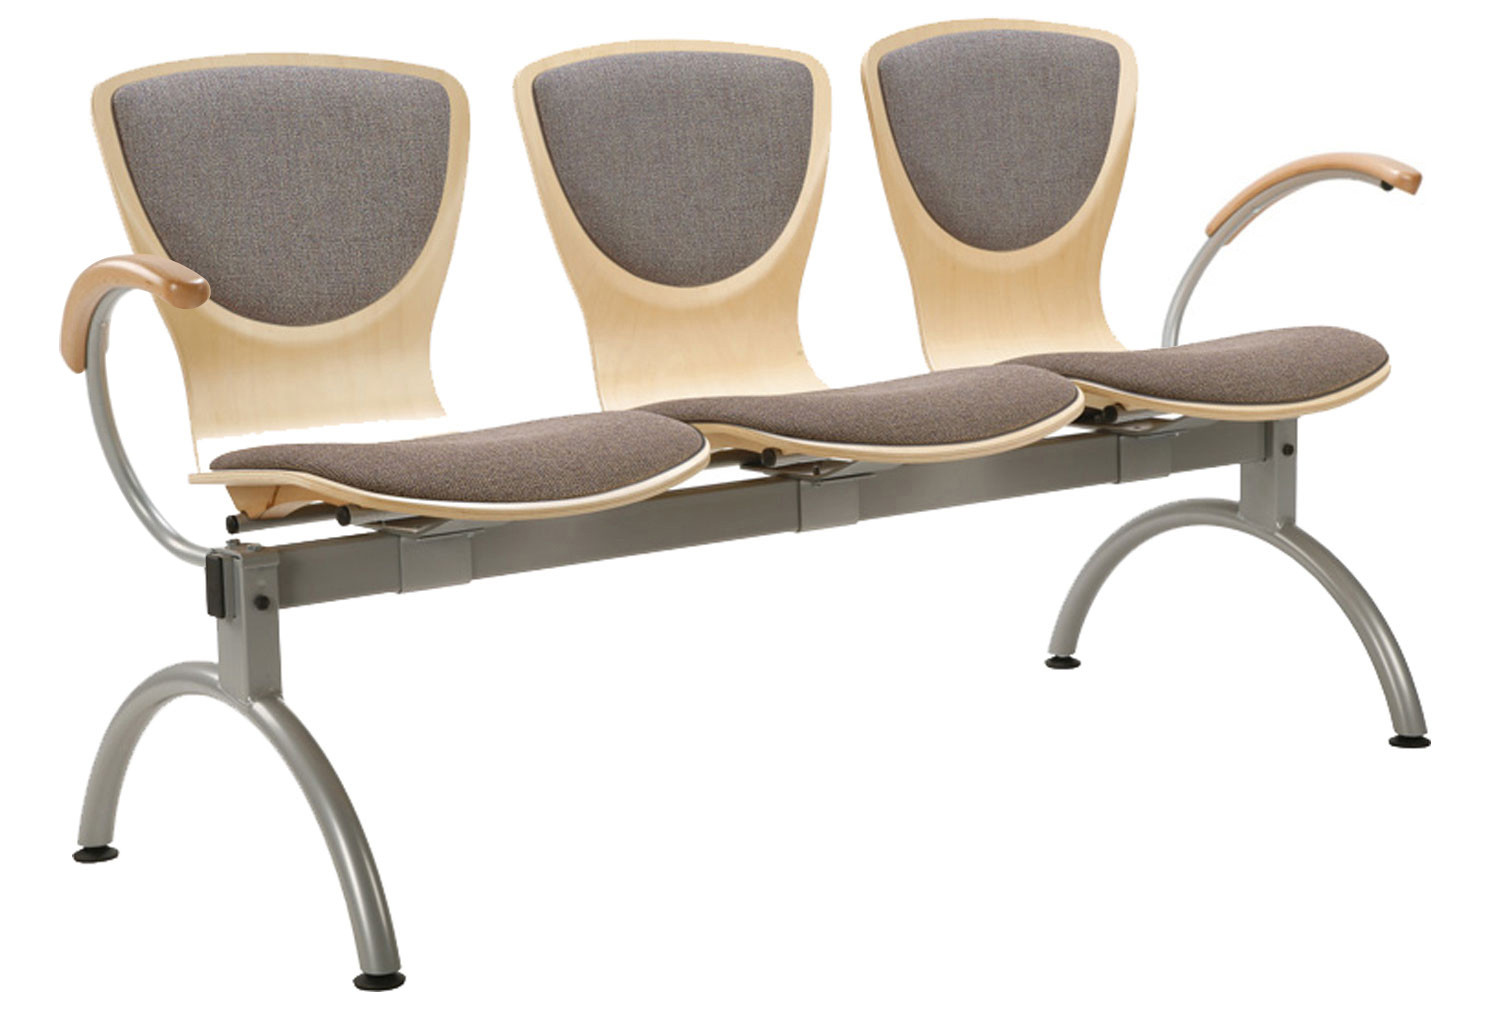 Serena 3 Person Beam Seating With Upholstered Seat Back Furniture At Work